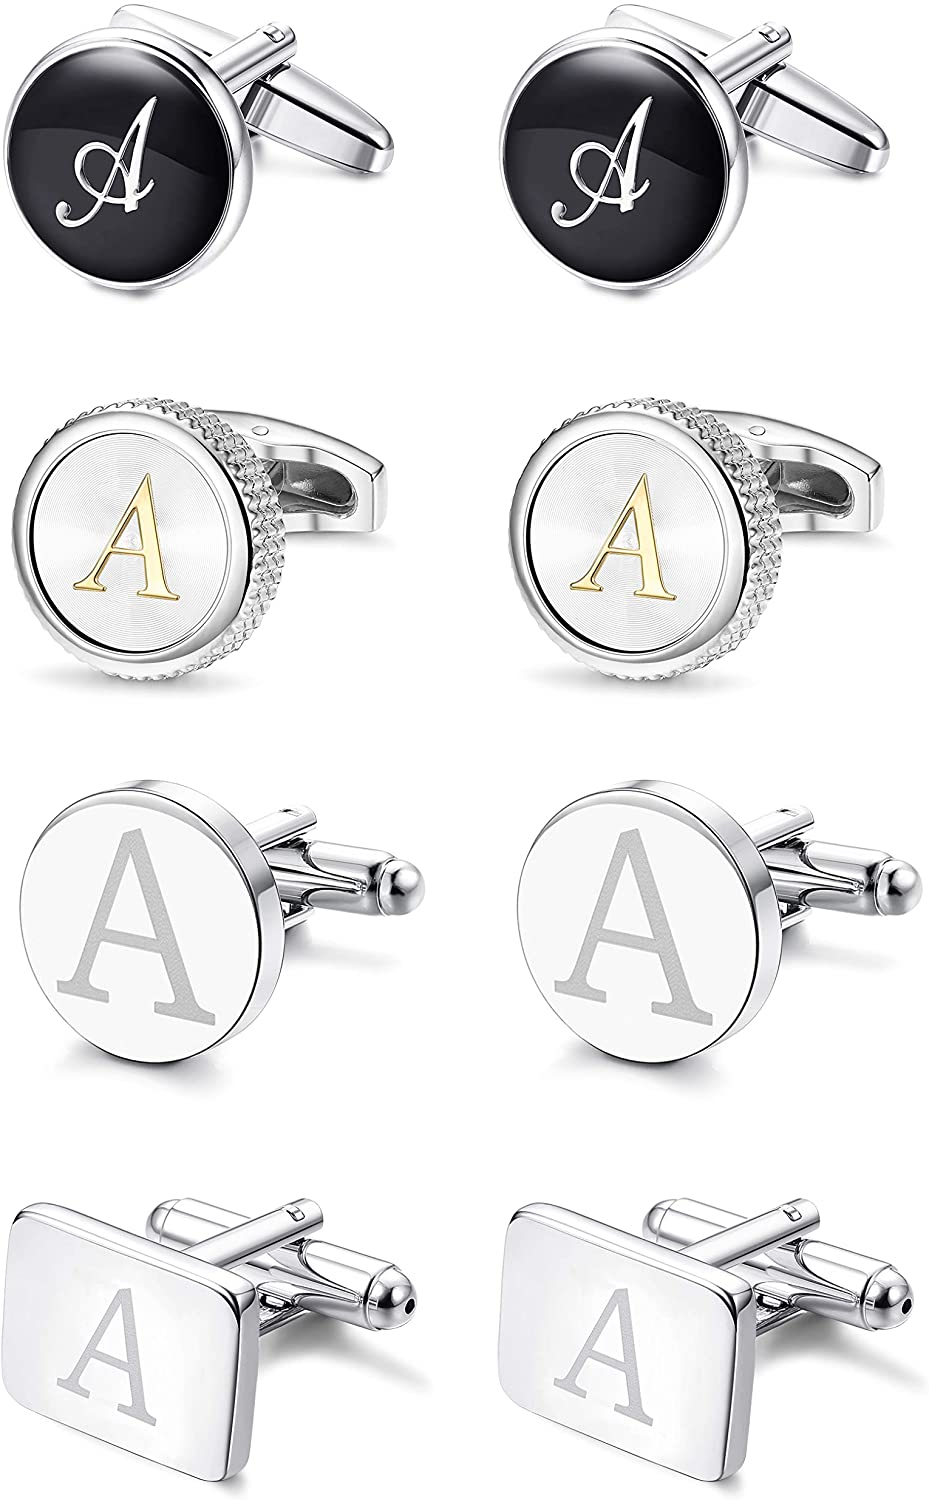 LOYALLOOK 4Pairs Men's Initial Letter Shirts Cufflinks Engraved Shirt Cufflink Alphabet Set Fashion Dazzle Tuxedo Cufflinks Business Wedding Father's DayGift